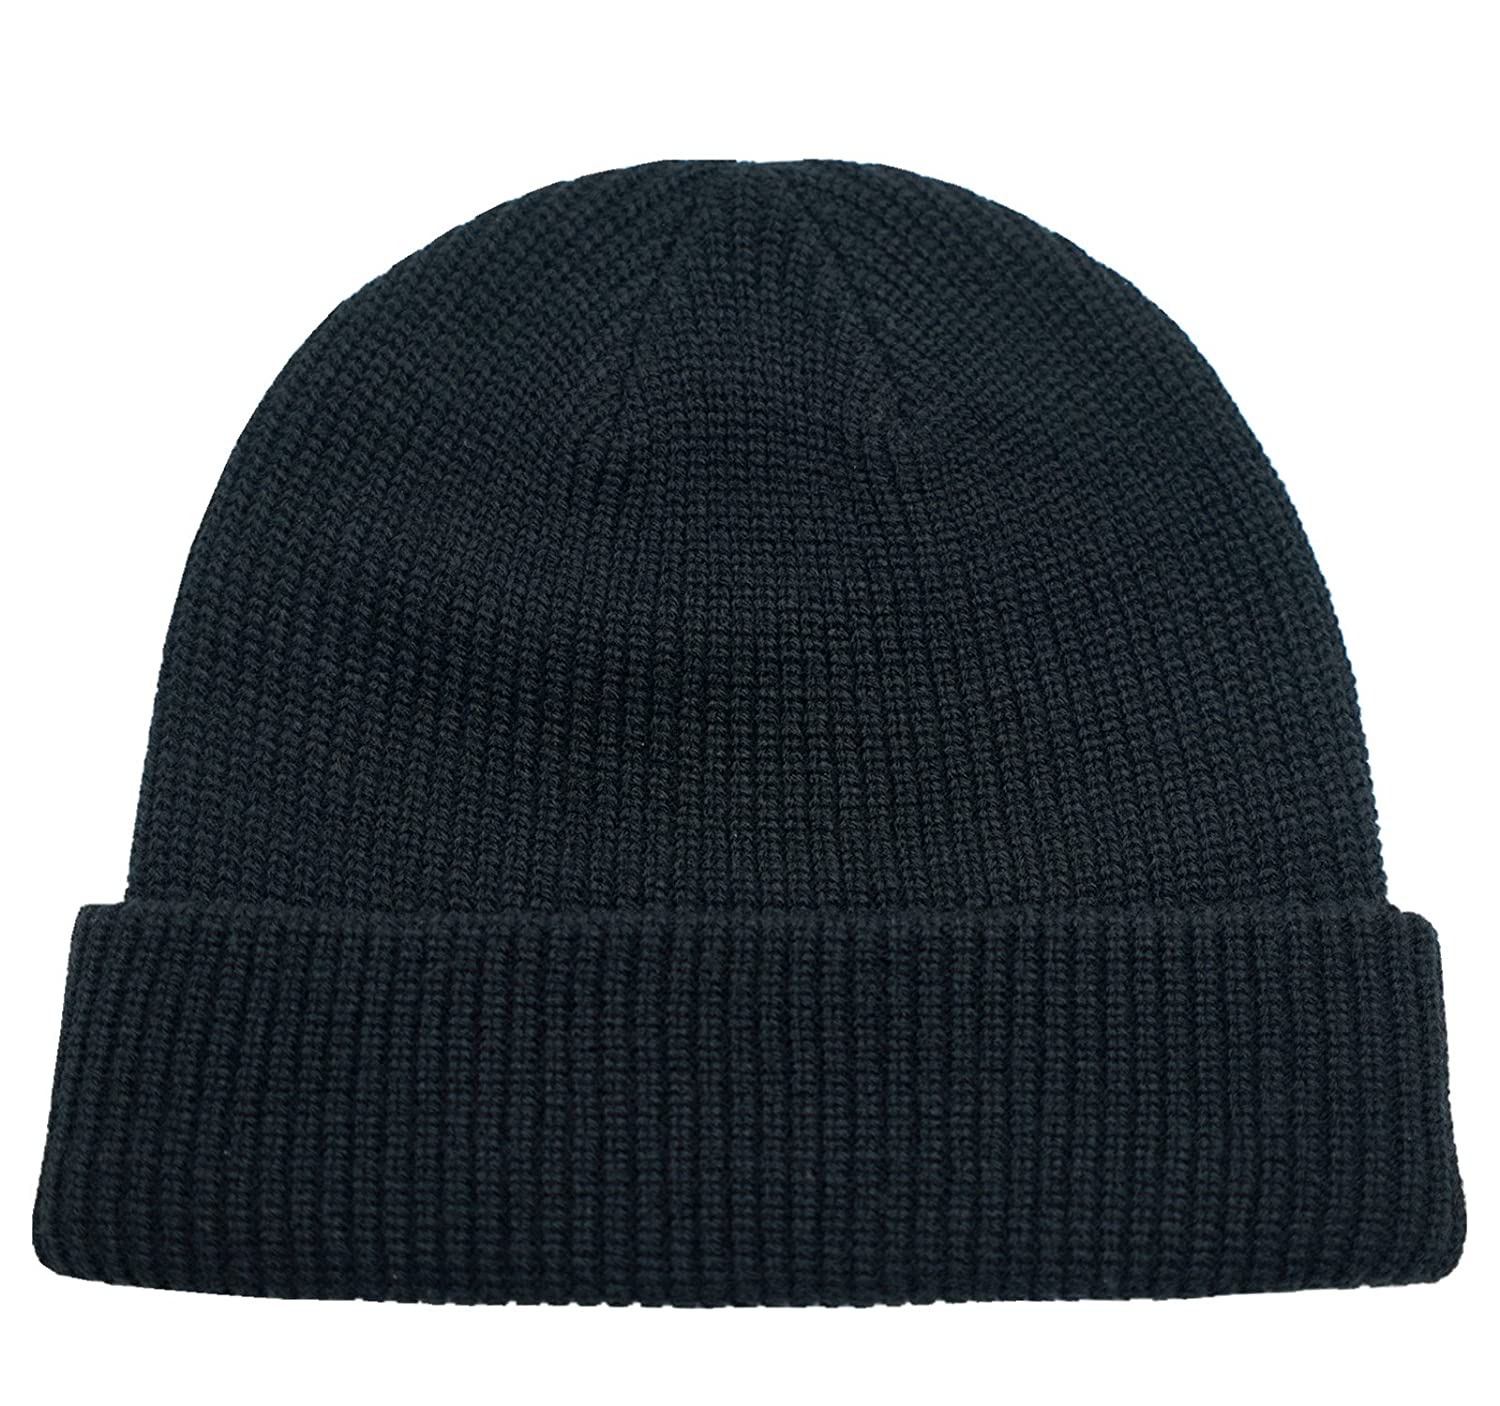 638342920c5 Amazon.com  Connectyle Classic Men  s Warm Winter Hats Thick Knit Cuff Beanie  Cap Daily Beanie Hat Black